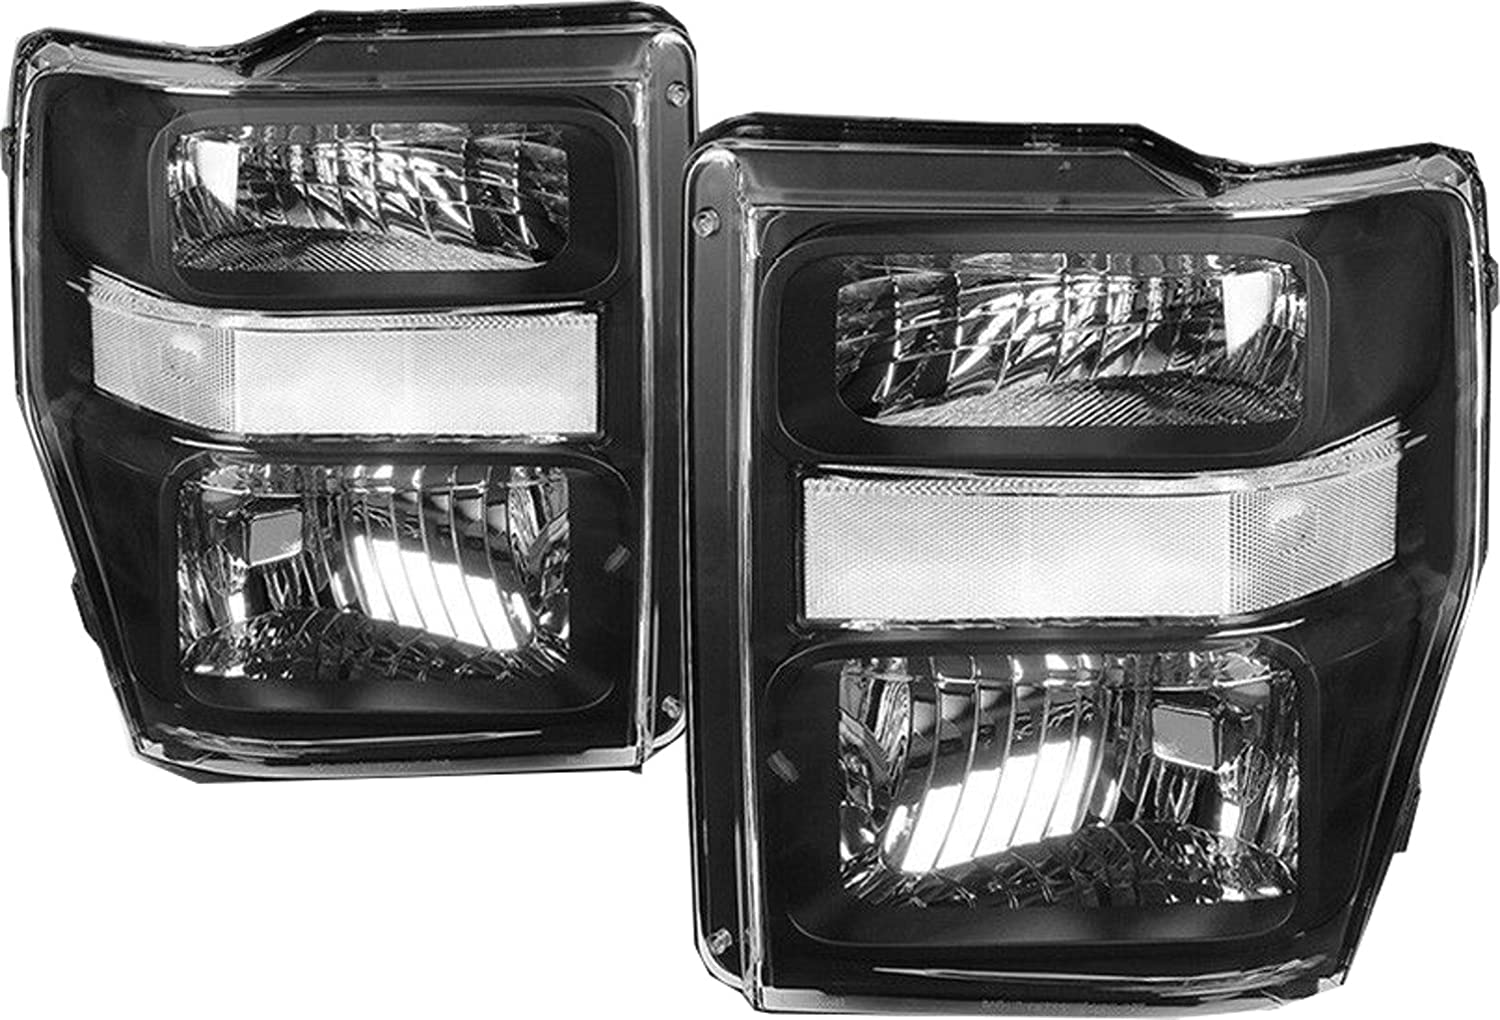 Pair,FO2502243,FO2503243 For 08-10 Ford F250 F350 F450 Super duty Headlight Assembly,OE Projector Headlamp,Black housing,